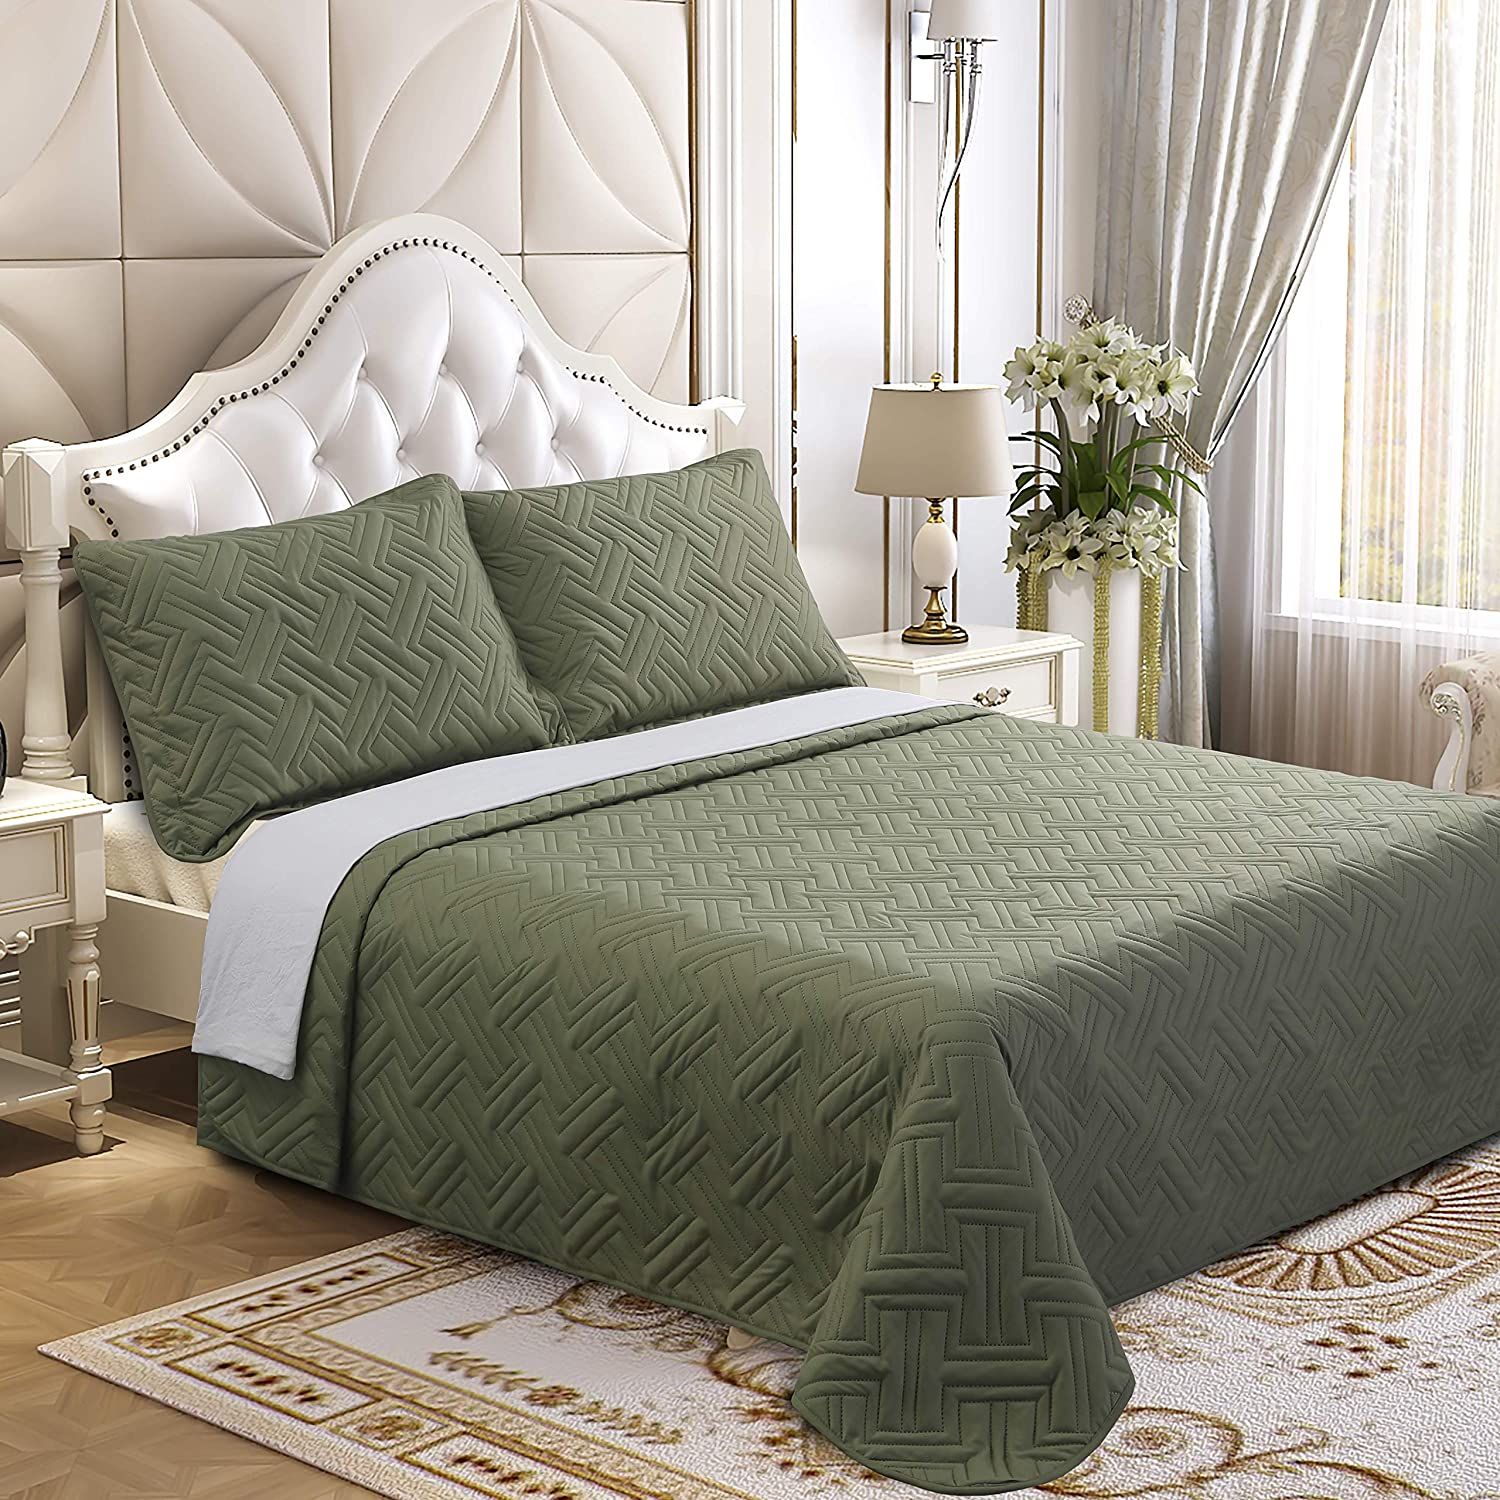 Lorient Home Brushed Microfiber Embossed 3 Piece King Lightweight Quilt Set for Coverlet or Blanket Forest Green Bedding, Multi